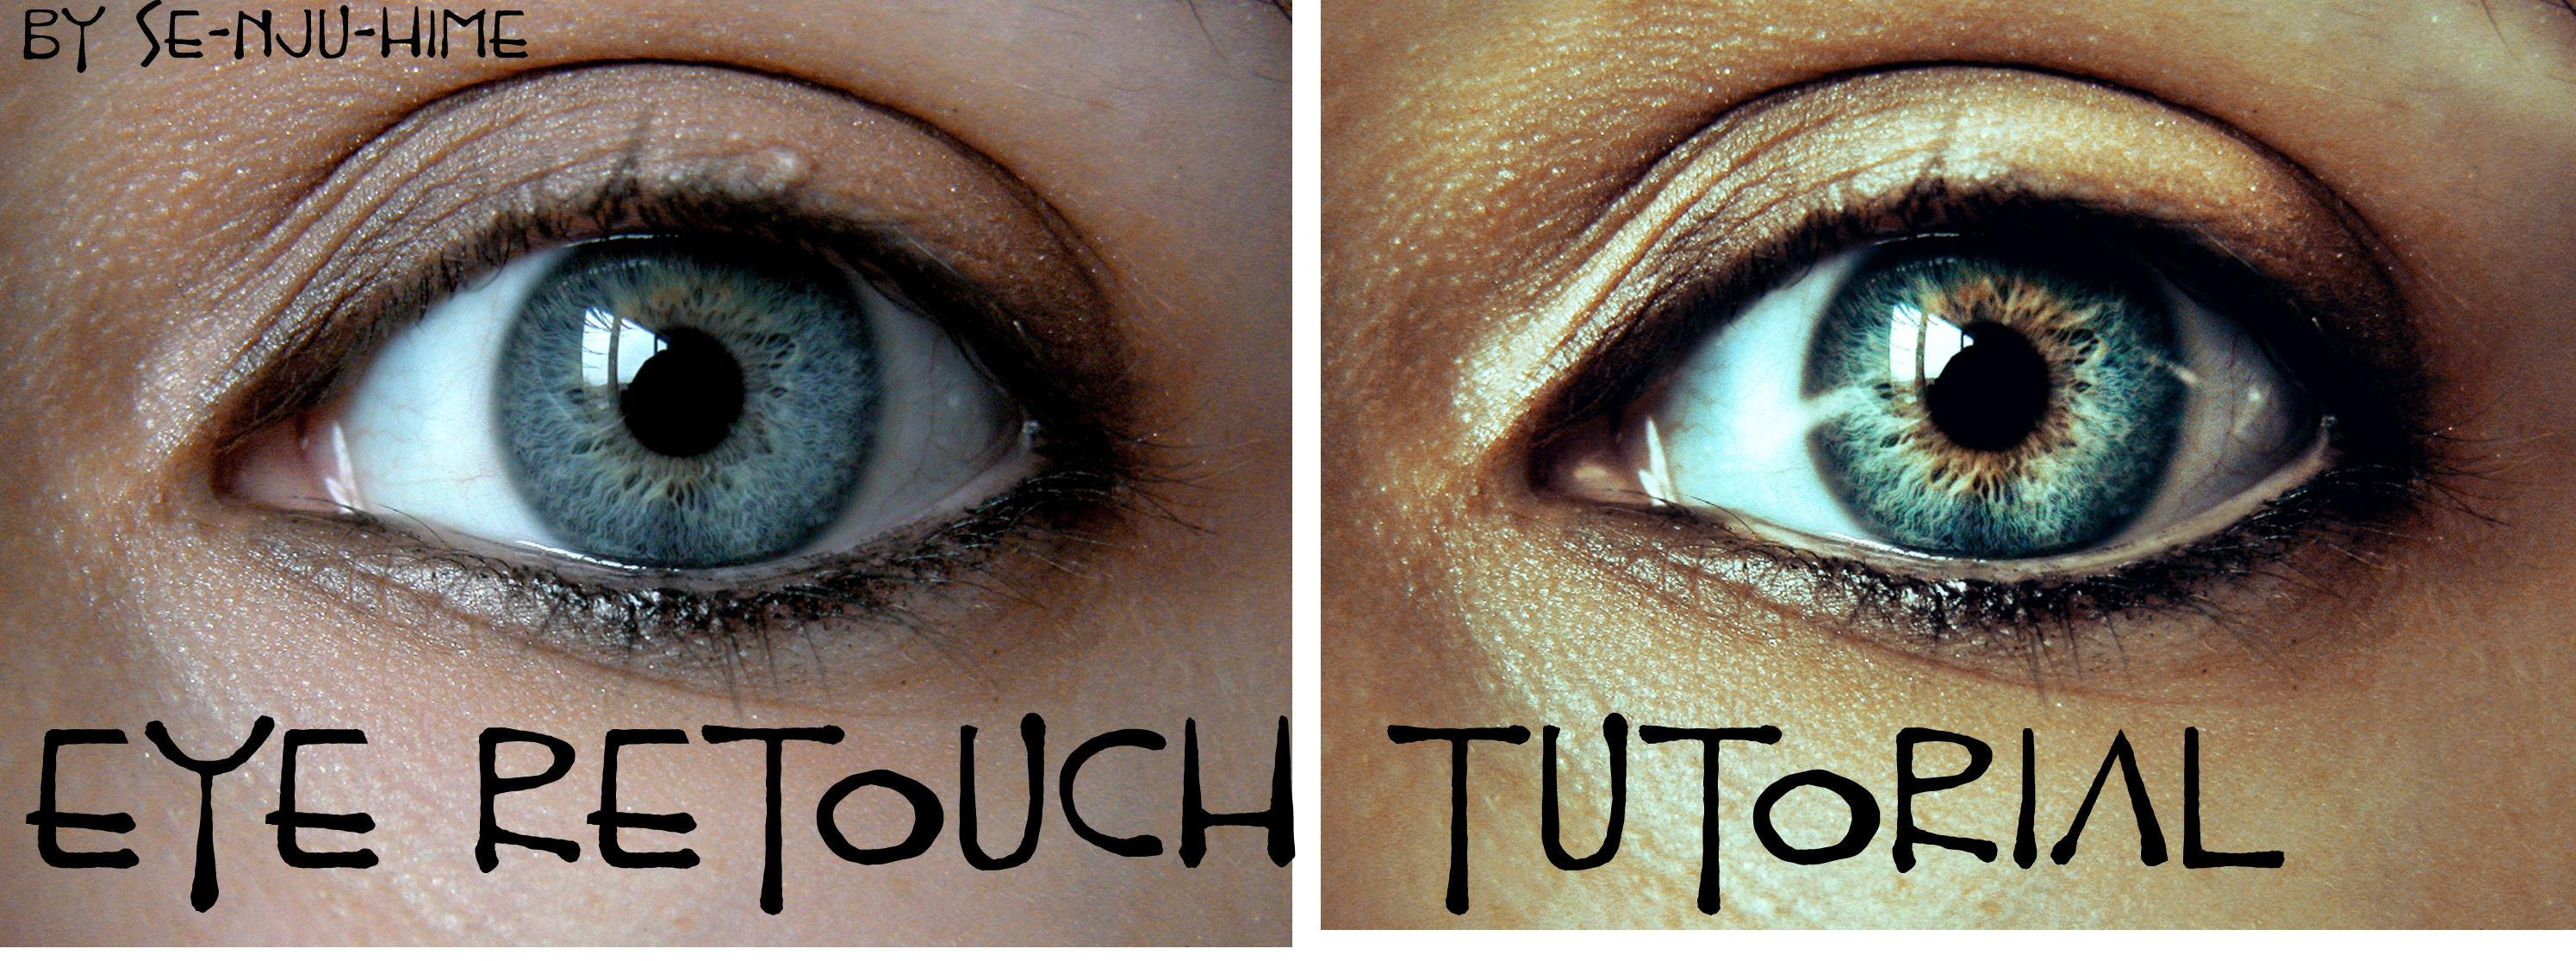 Eye retouch tutorial by cristina otero on deviantart eye retouch tutorial by cristina otero baditri Choice Image